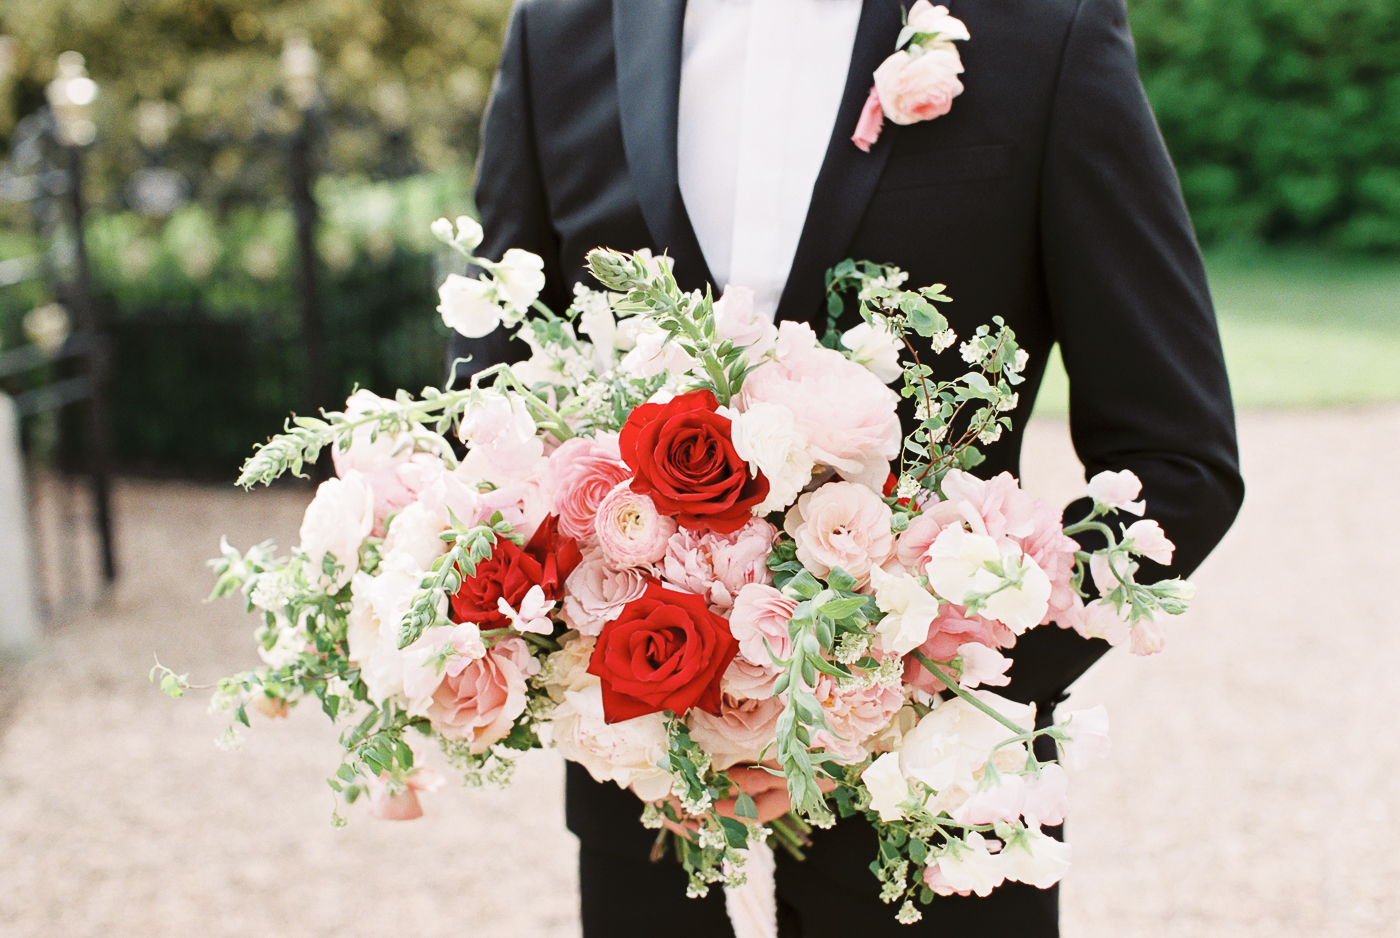 the groom holding brides flower bouquet